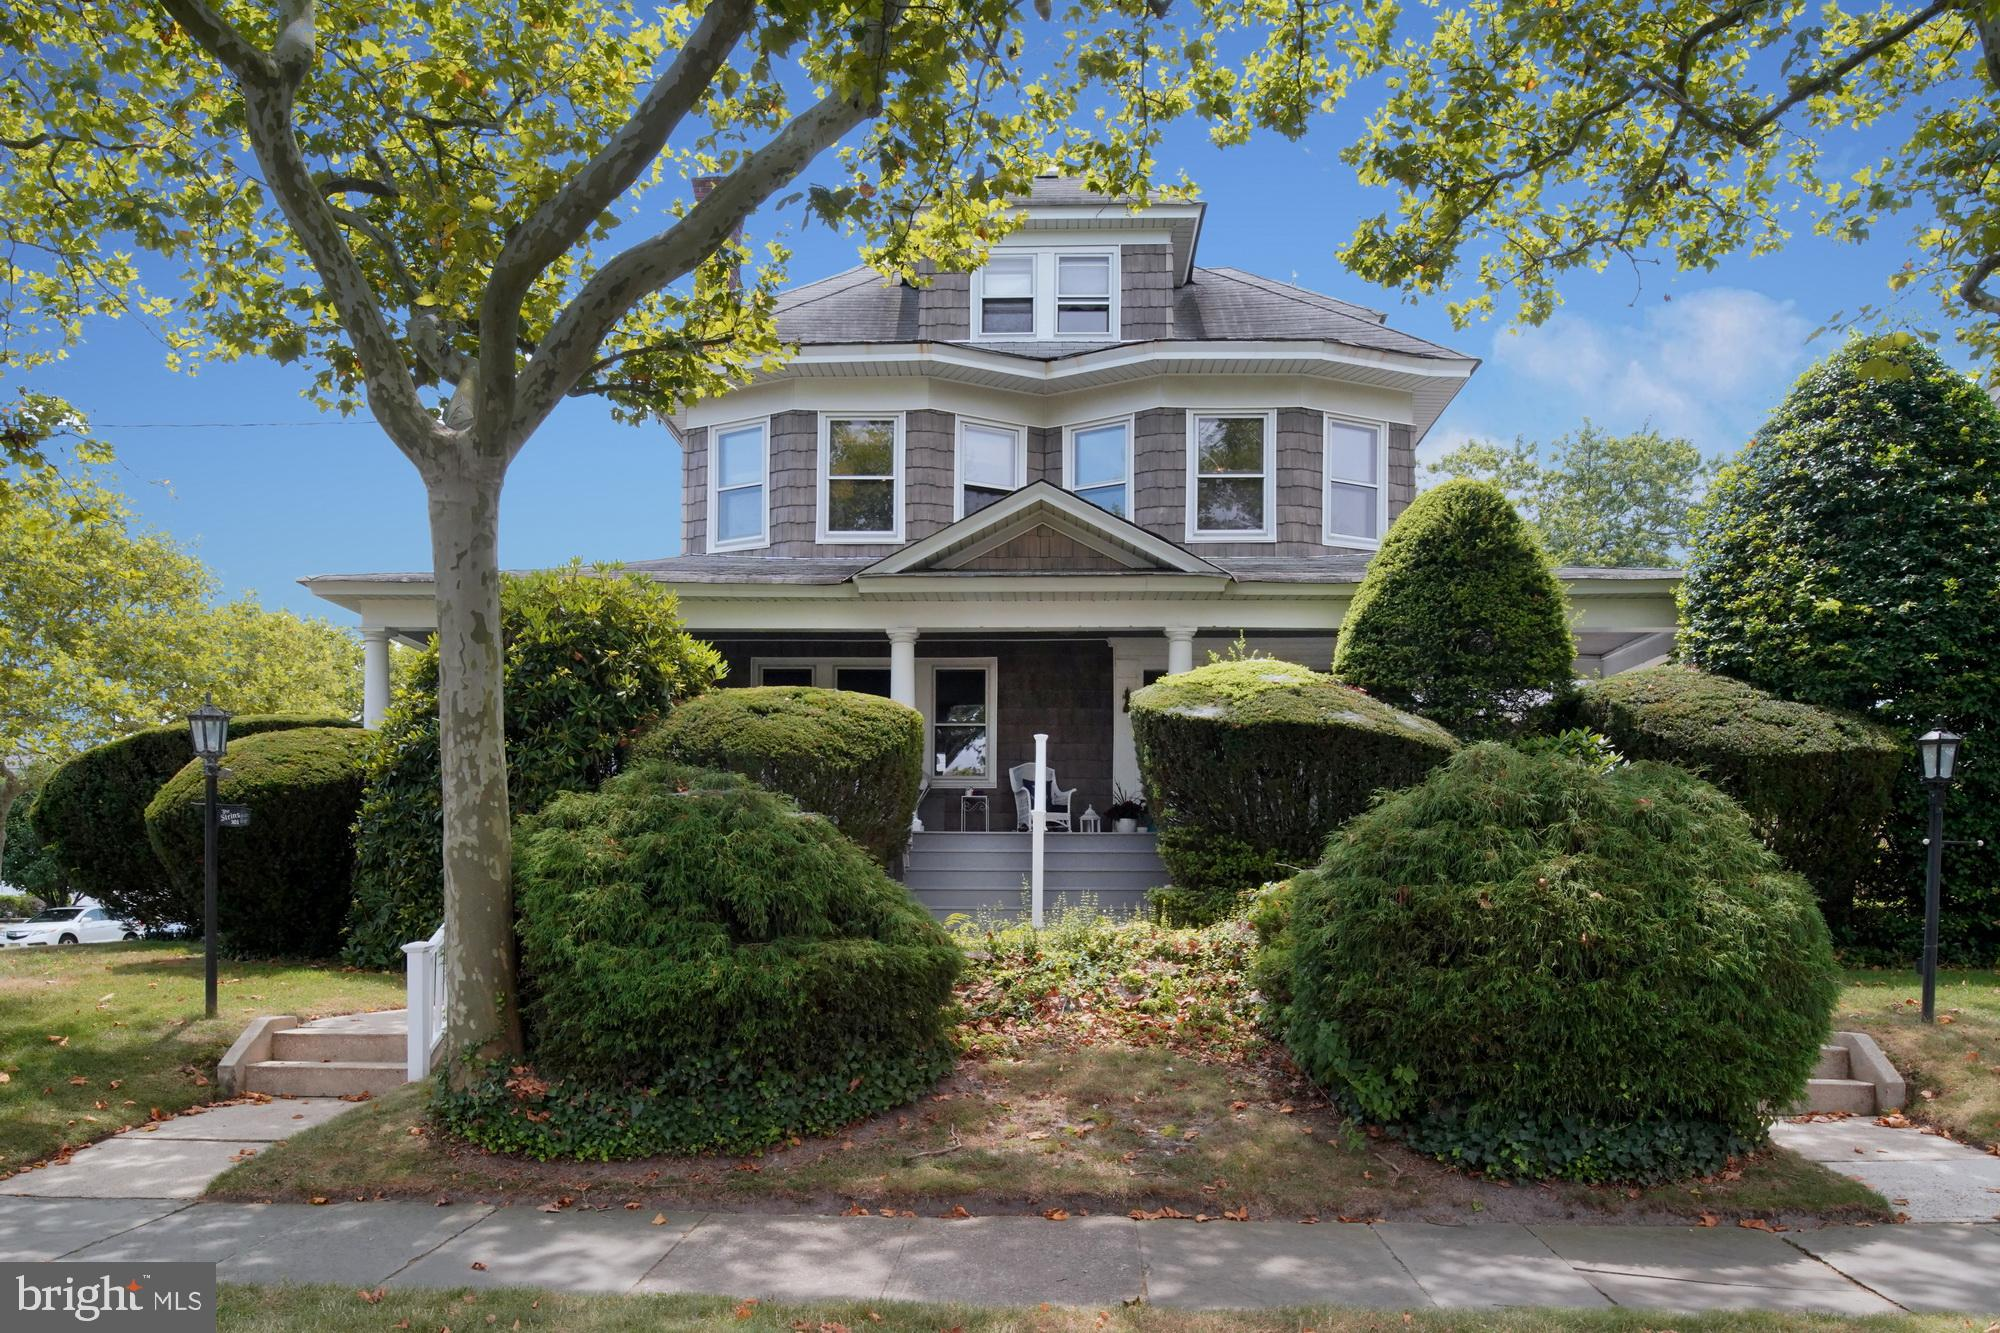 301 3RD AVENUE, BRADLEY BEACH, NJ 07720